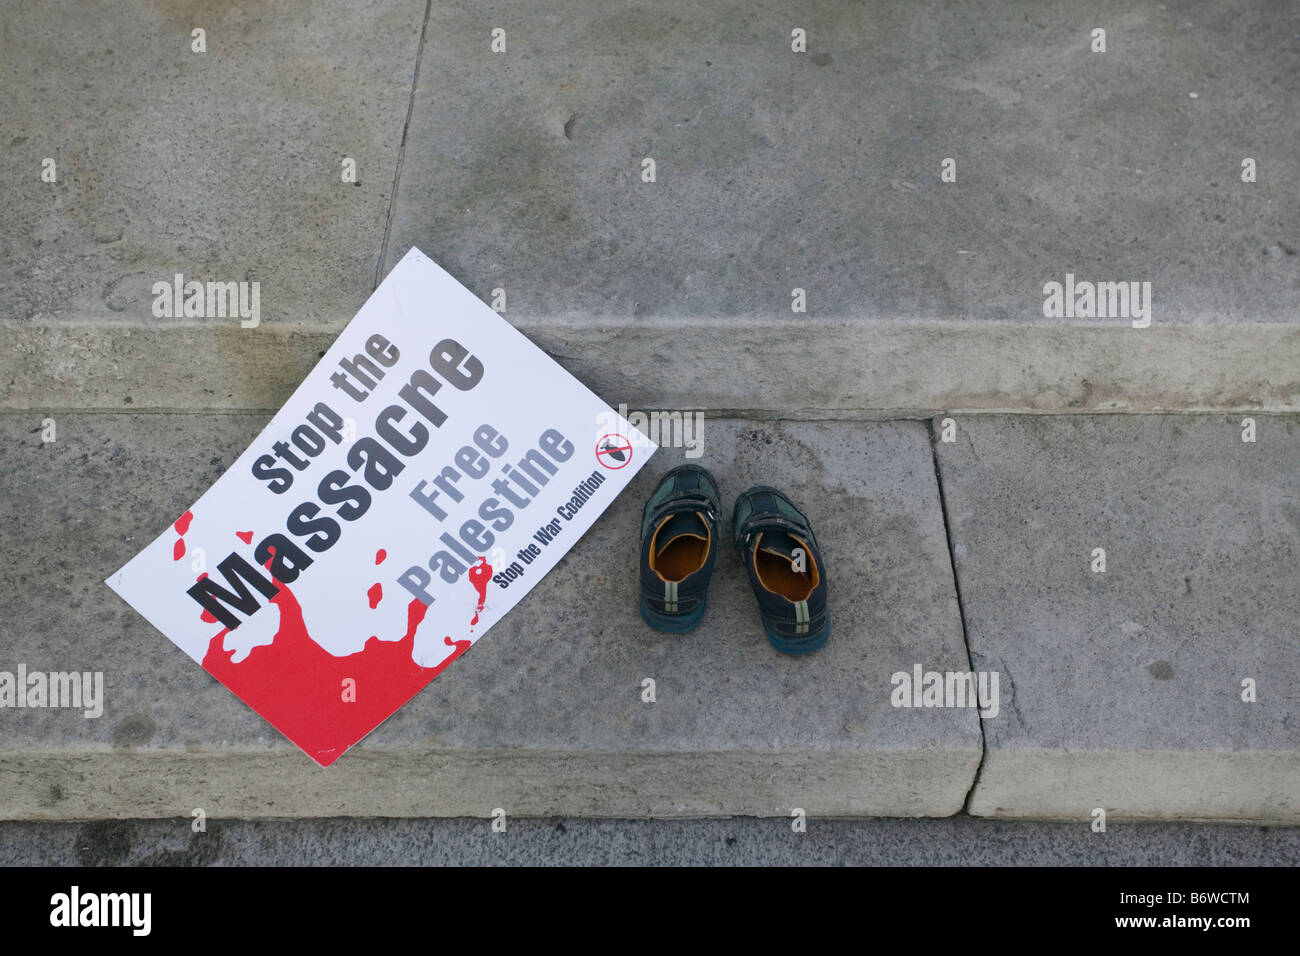 Children's shoes on Cenotaph at anti-Israeli Demonstration in London after attacks on Gaza Strip. - Stock Image